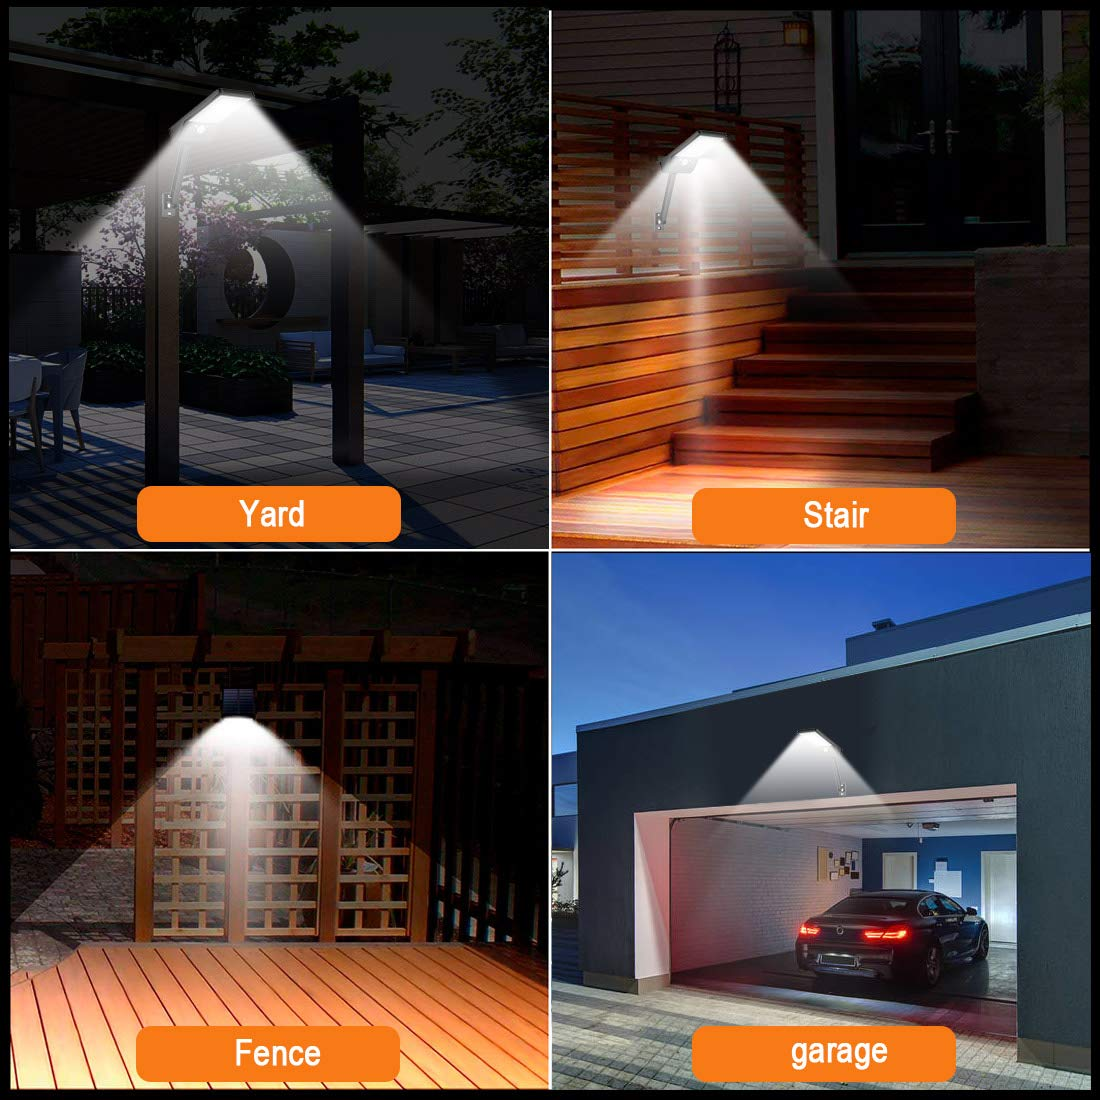 MODAR Solar Light Outdoor,48 LED Motion Sensor with Remote Control 3 Lighting Modes, IP65 Waterproof Ideal for Garden, Garage, Driveway 1 Pack